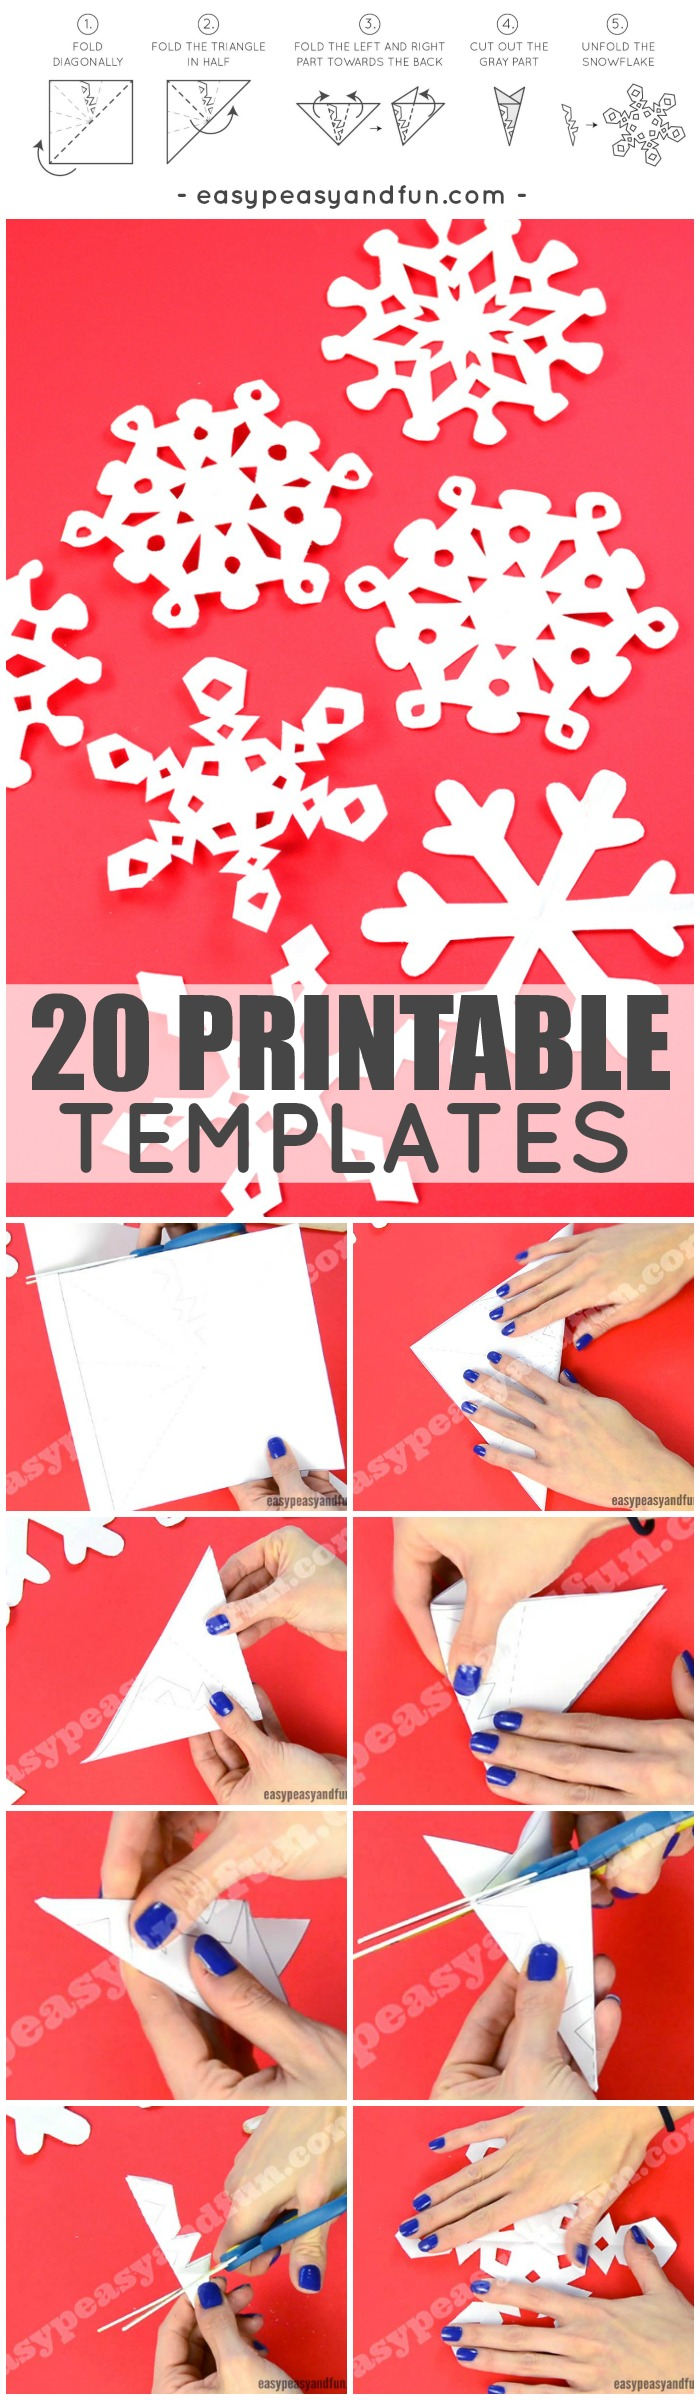 How To Make Paper Snowflakes with 20 Printable Templates and Designs